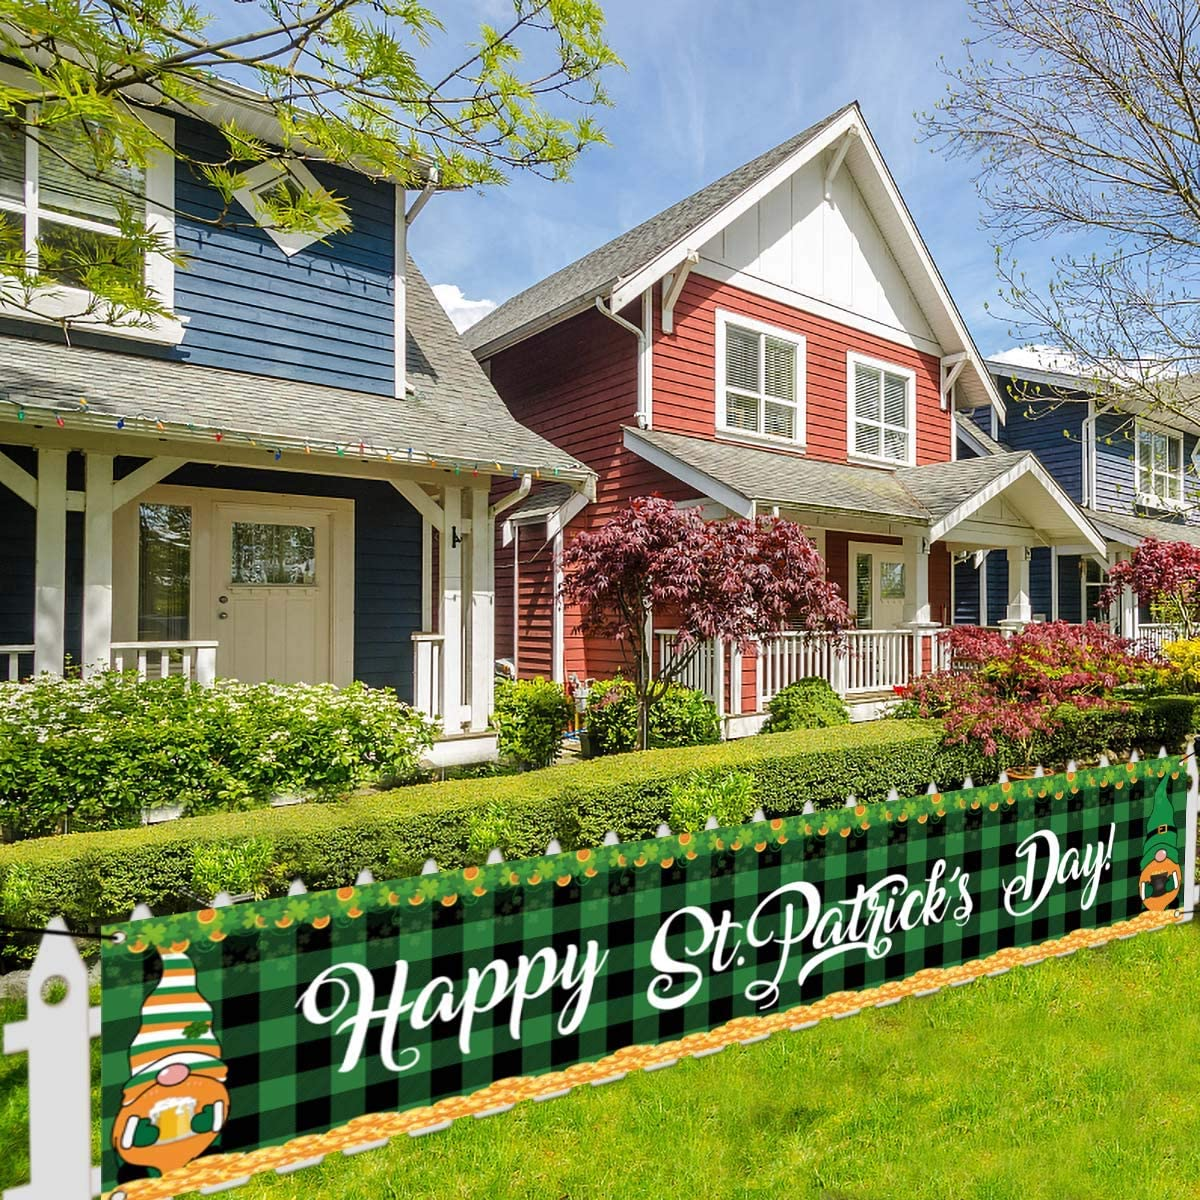 Large Happy St Patrick's Day Banner St Patricks Day Swedish Gnome Decoration Backdrop St Paddy's Day Garden Yard Sign Irish Party Decor and Supplies